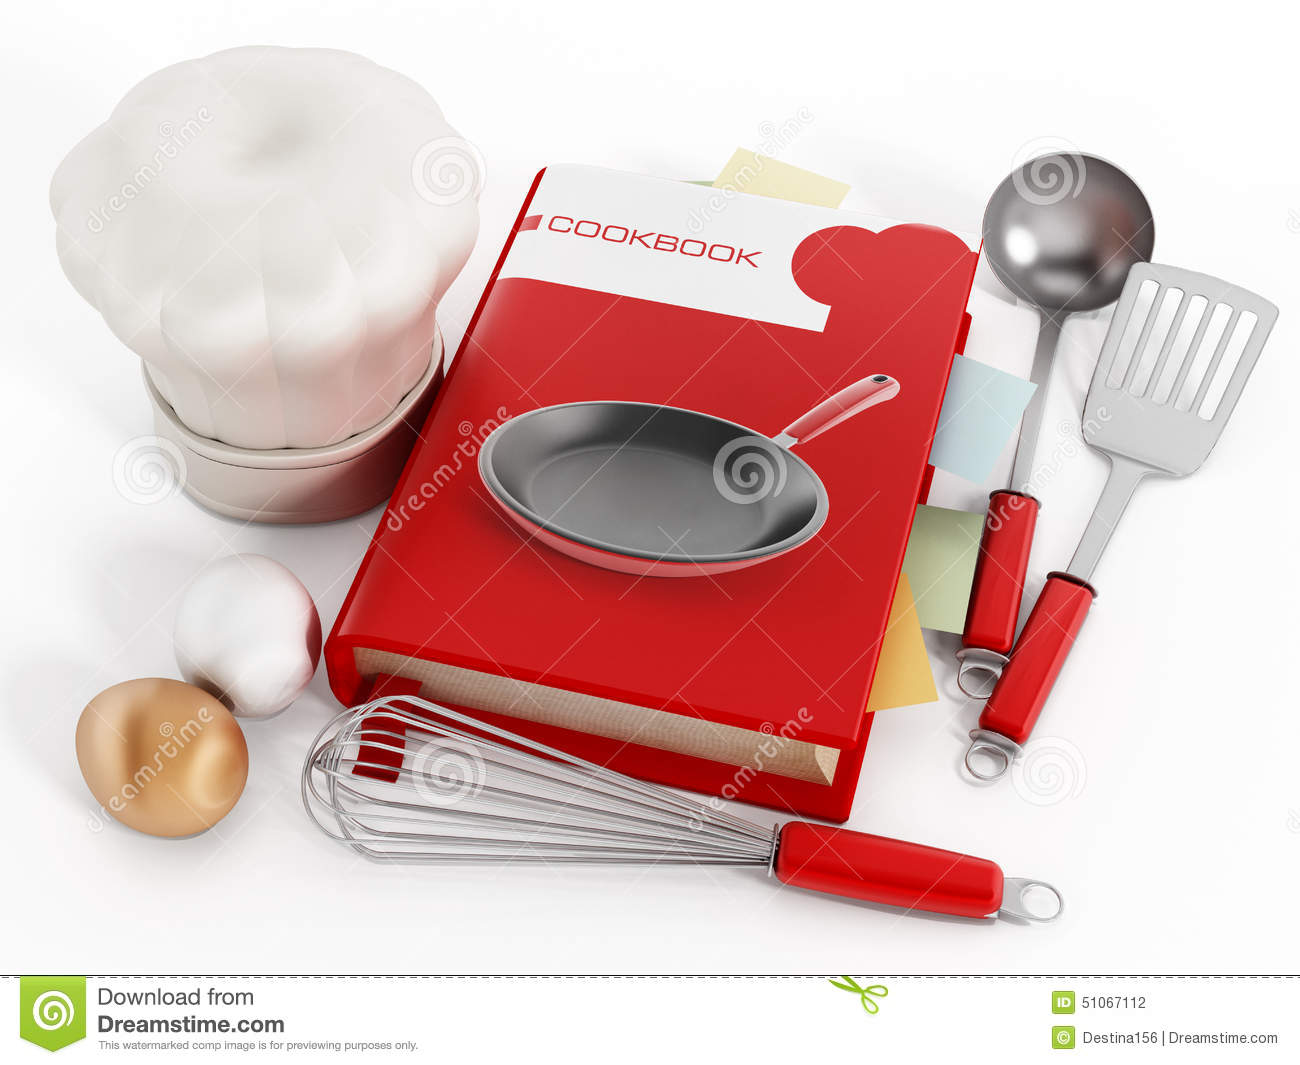 Cookbook And Kitchen Utensils On White Background